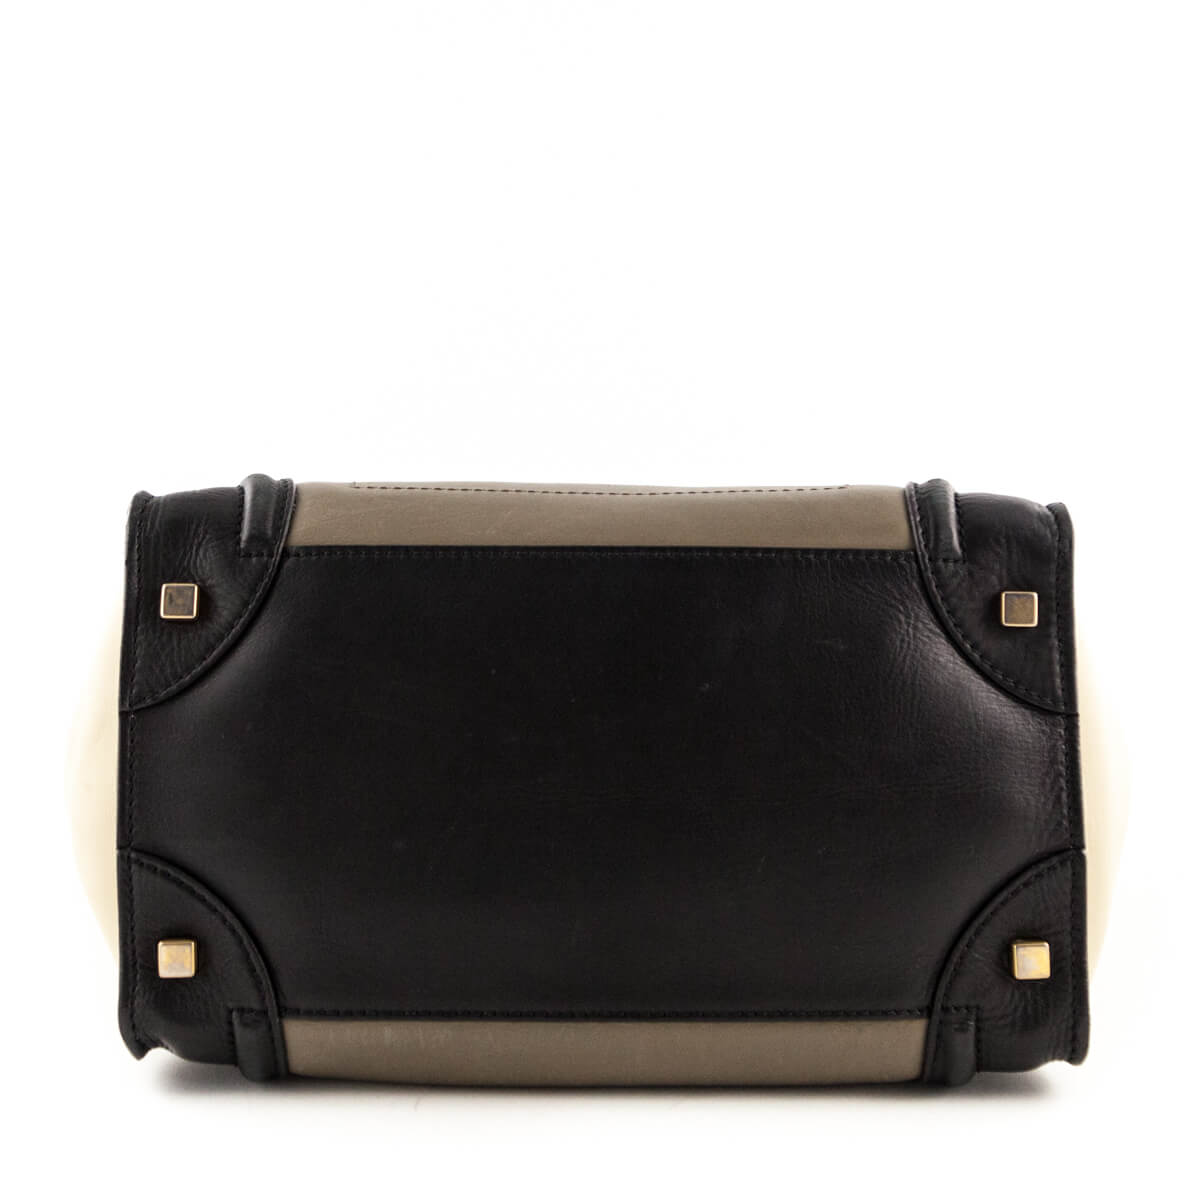 2a0079cfed7b ... Celine Olive Tricolor Calfskin Mini Luggage - LOVE that BAG - Preowned  Authentic Designer Handbags ...